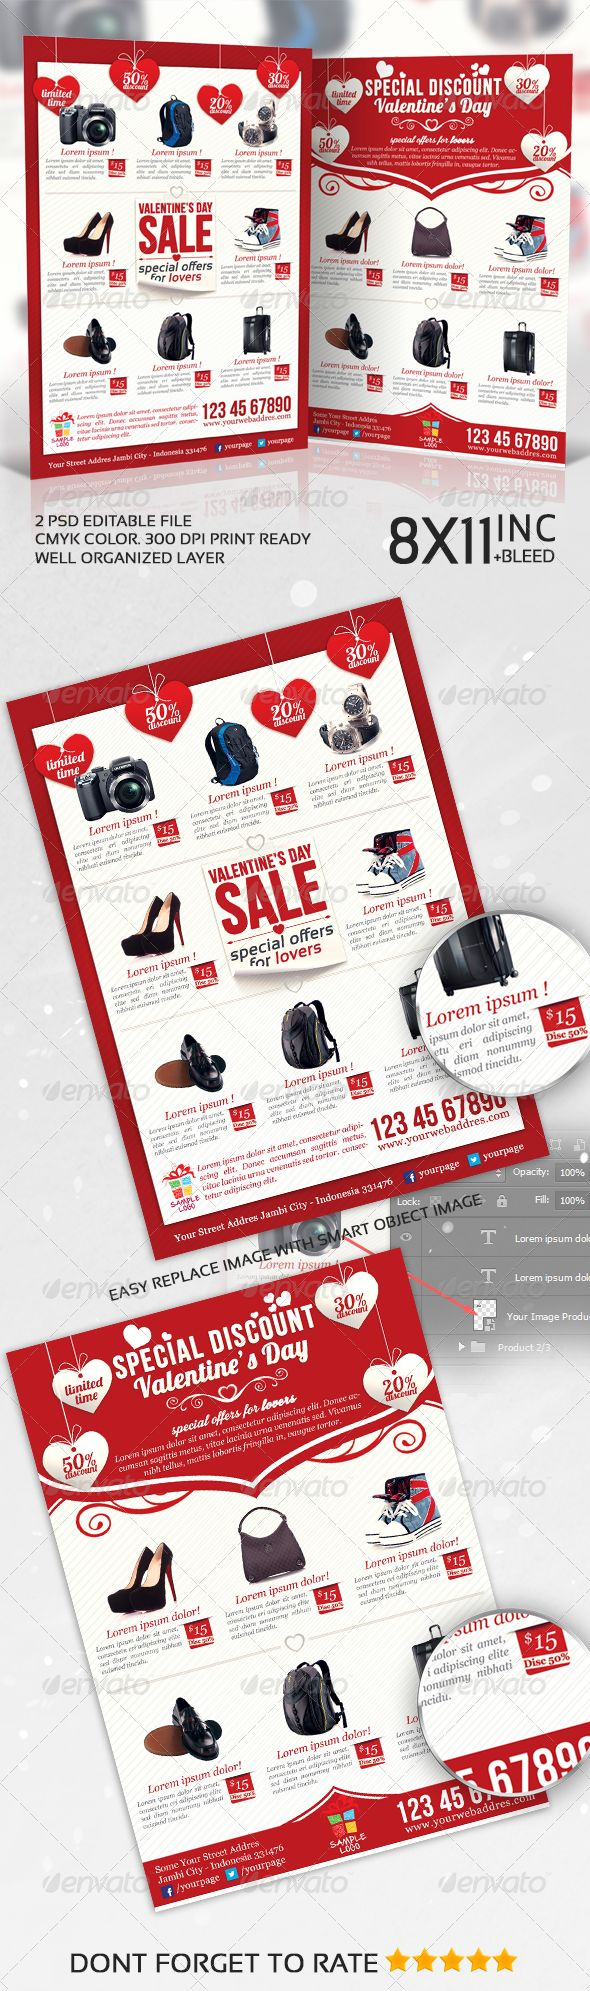 Valentines Product Sale / Promotion Flyer — Photoshop PSD #promotion #discount • Available here → https://graphicriver.net/item/valentines-product-sale-promotion-flyer/6763195?ref=pxcr